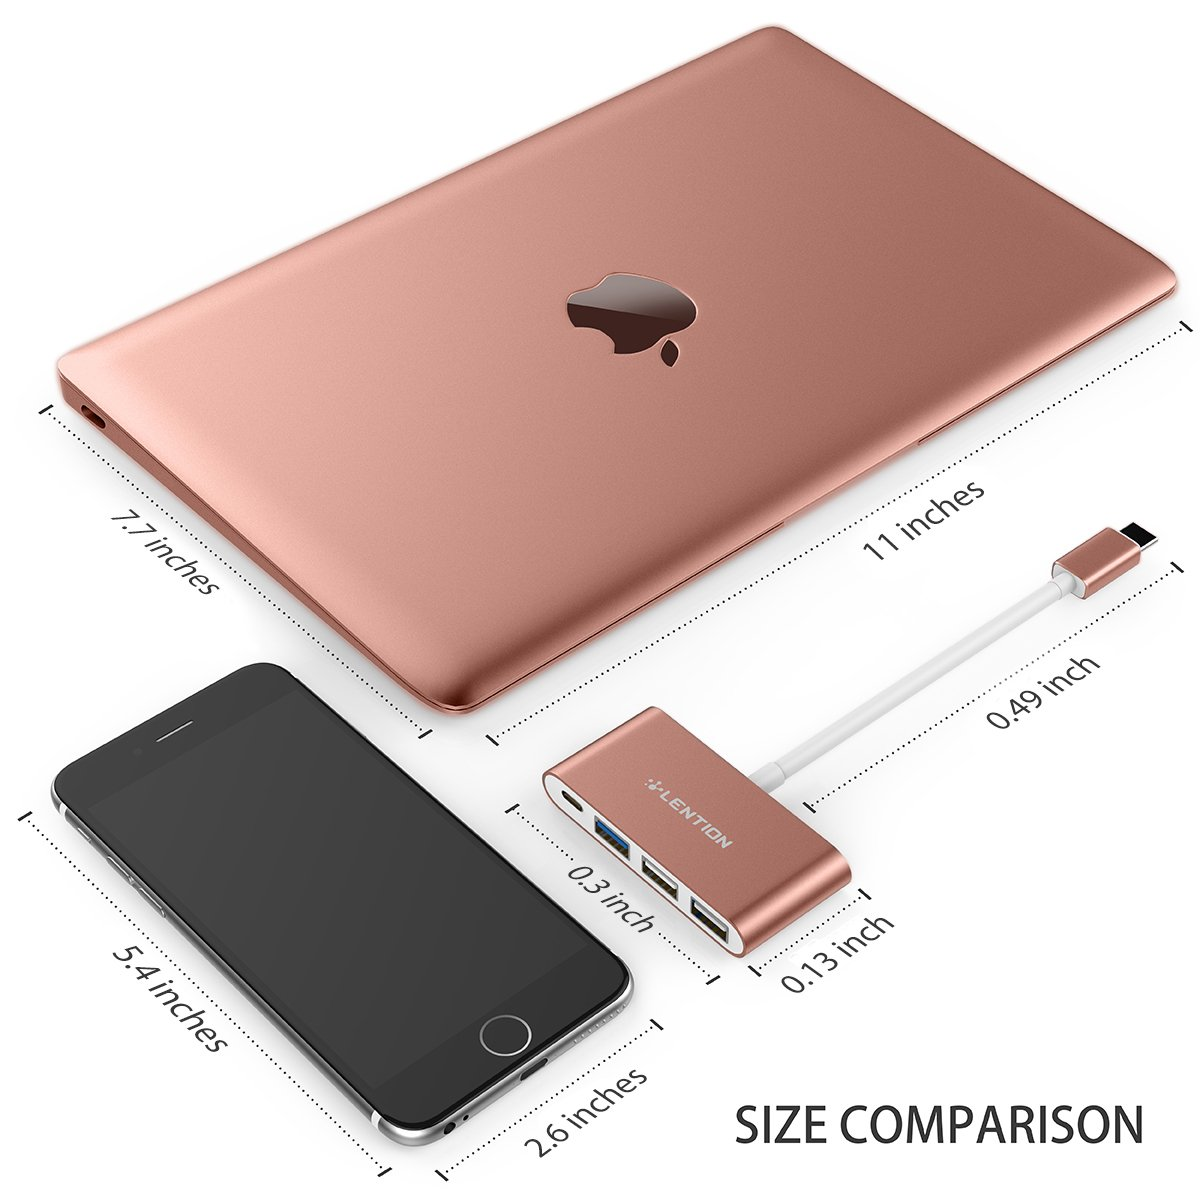 ChromeBook USB 2.0 Ports Compatible Apple MacBook Air 2018 USB 3.0 MacBook Pro 13//15 LENTION 4-in-1 USB-C Hub with Type C More Thunderbolt 3 Multi-Port Charging /& Connecting Adapter Rose Gold